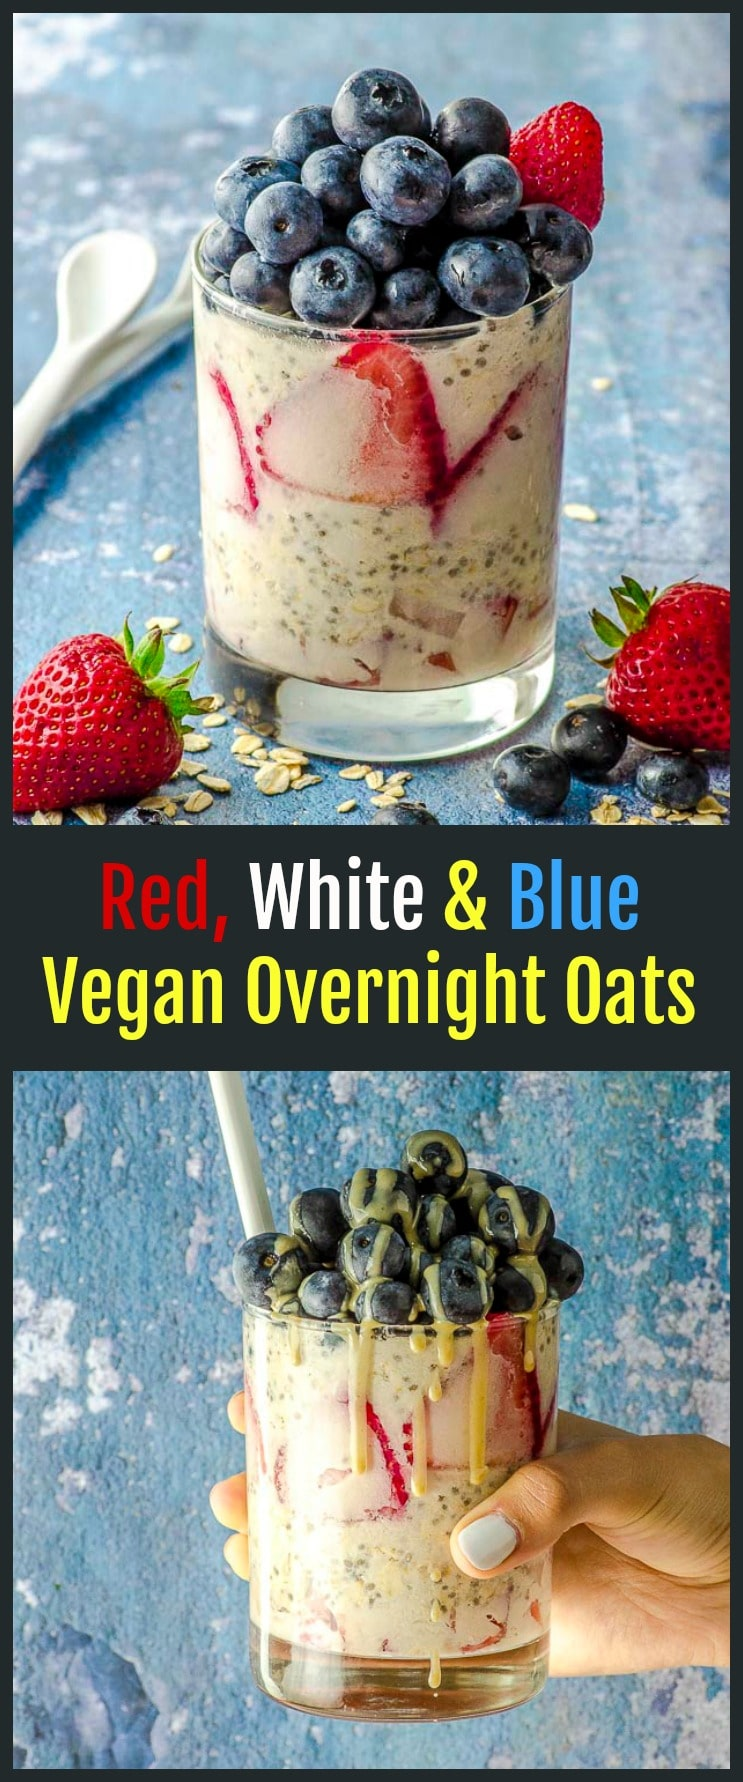 Launch your Fourth of July activities with our red, white, and blue vegan overnight oats – delicious, healthy, and a perfect way to start the holiday or any morning when you need an extra kick of energy and vitamins. #oats #overnight #breakfast #healthy #4thofJuly #redWhiteBlue #vegan #GlutenFree #blueberries